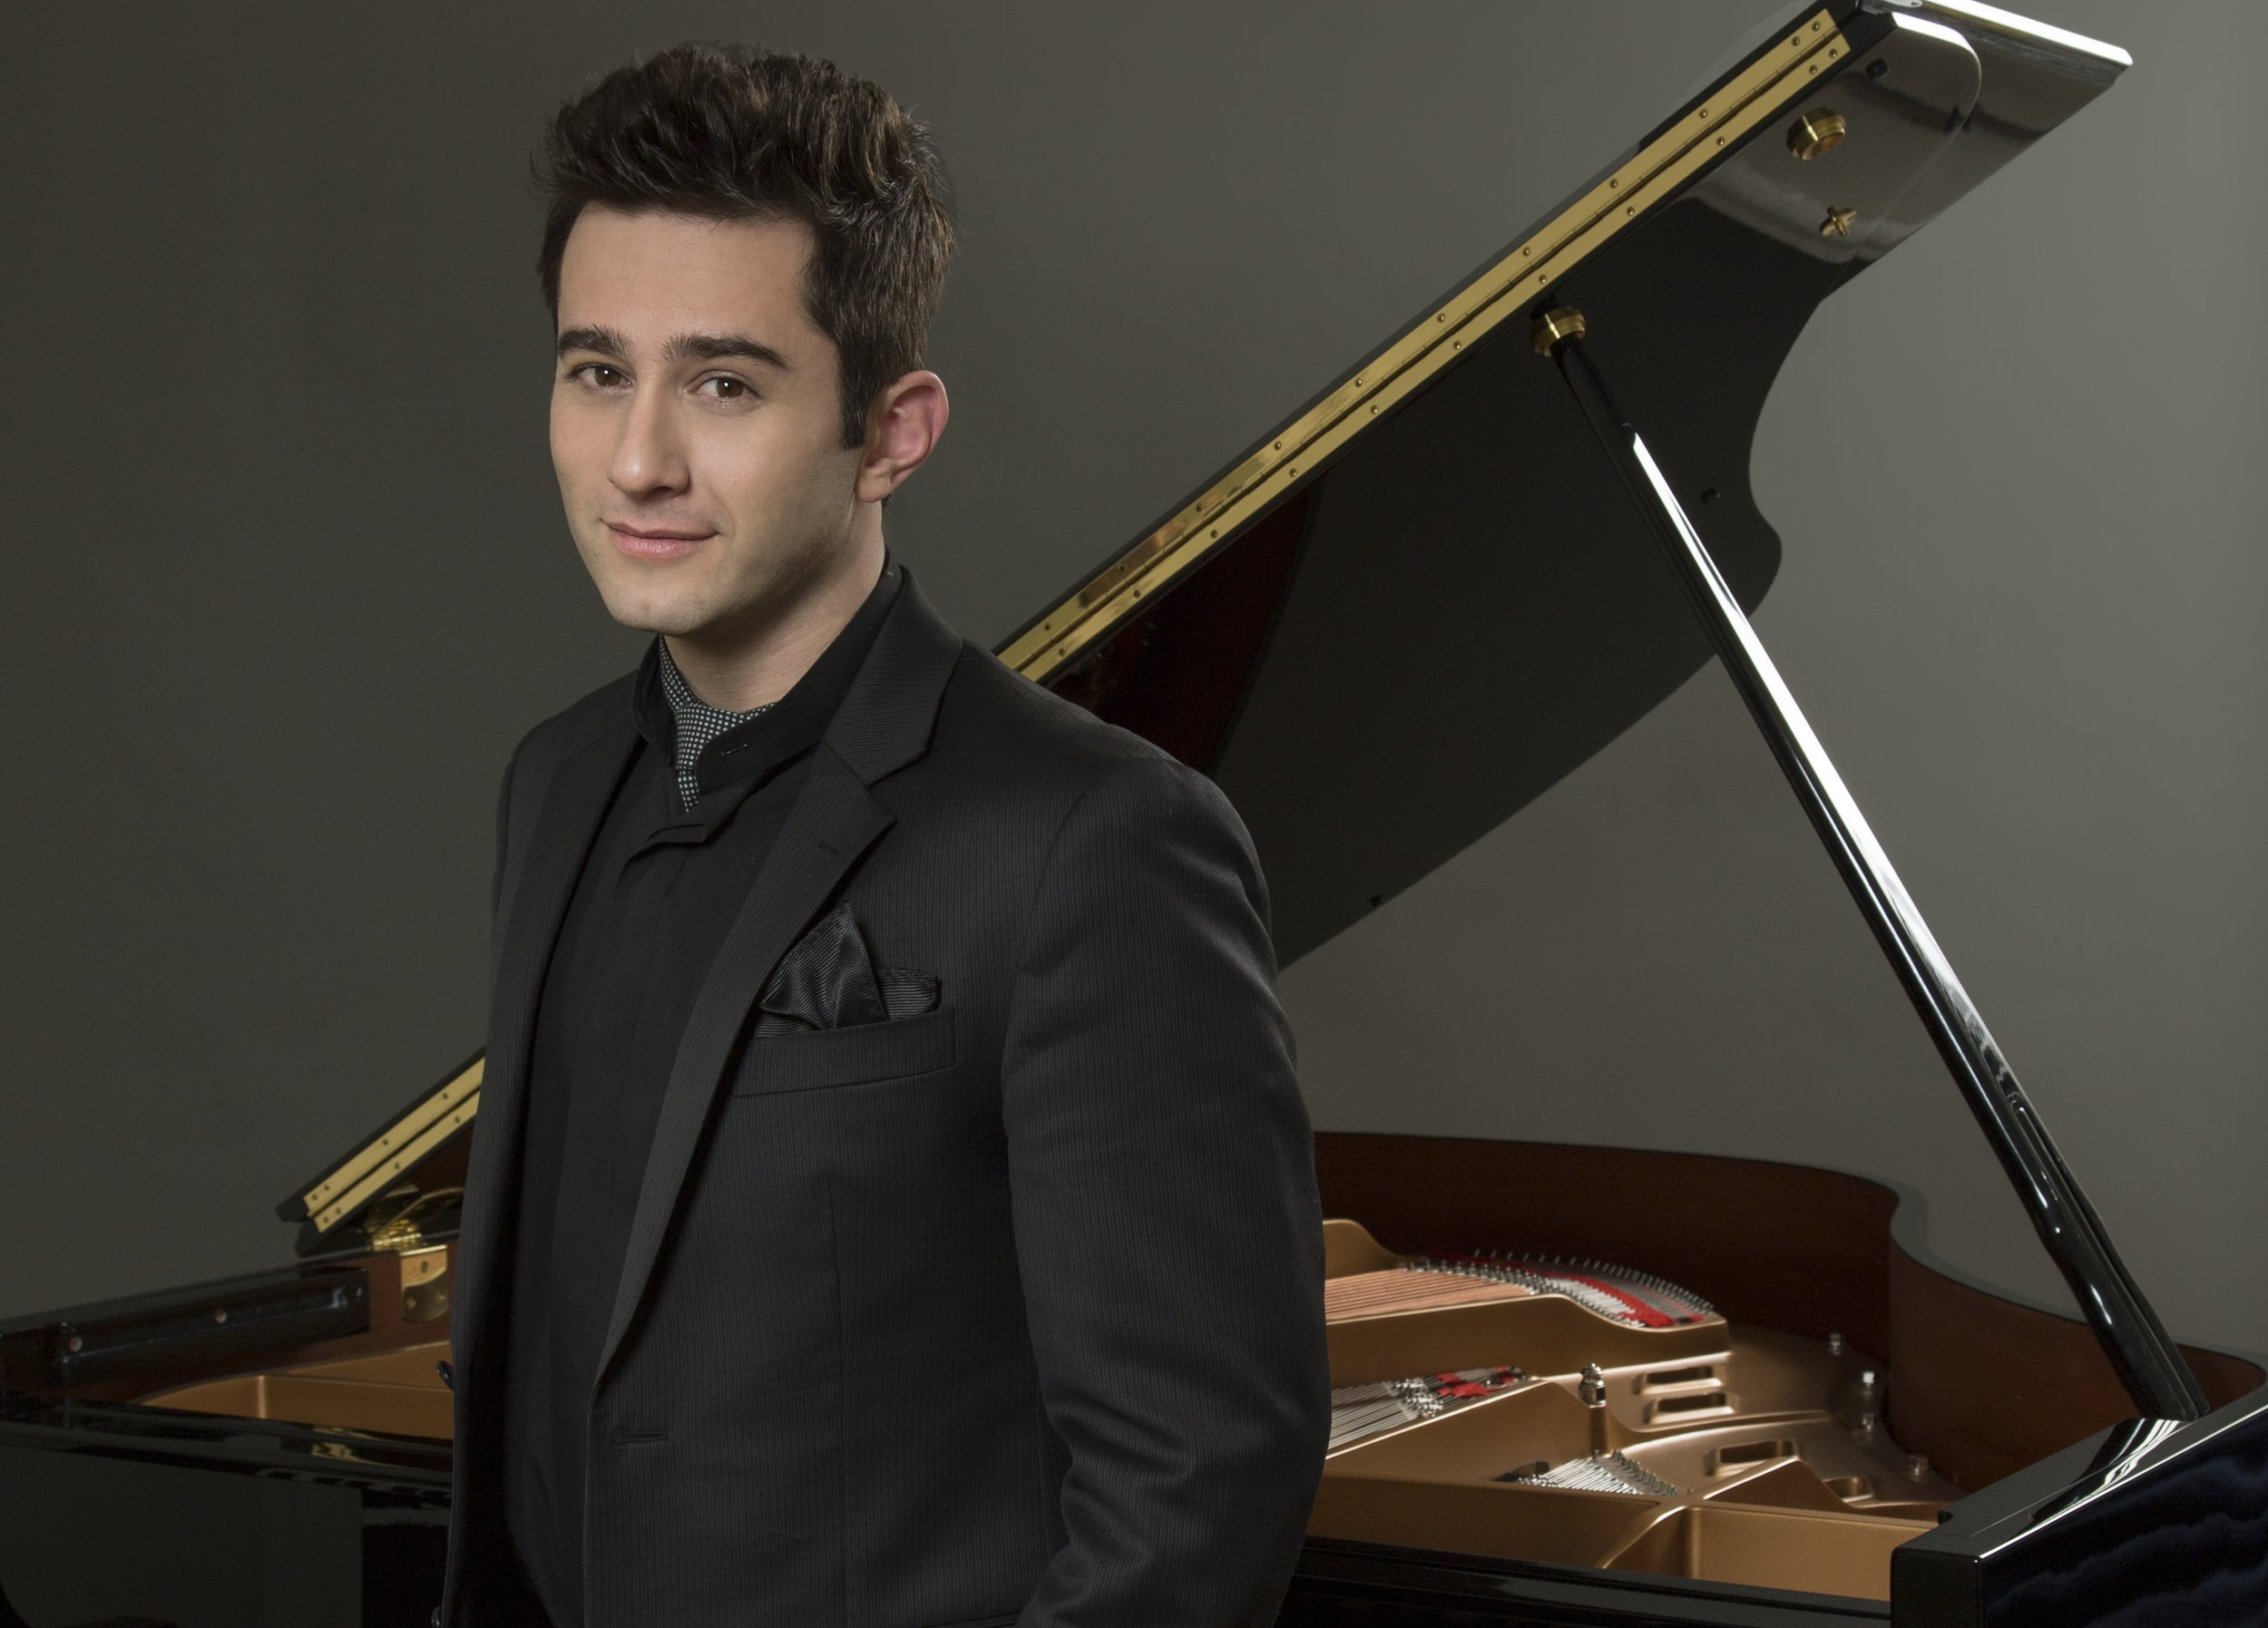 MattBaker_Katz_Press shot Piano_D8C2758a - Horizontal.jpg